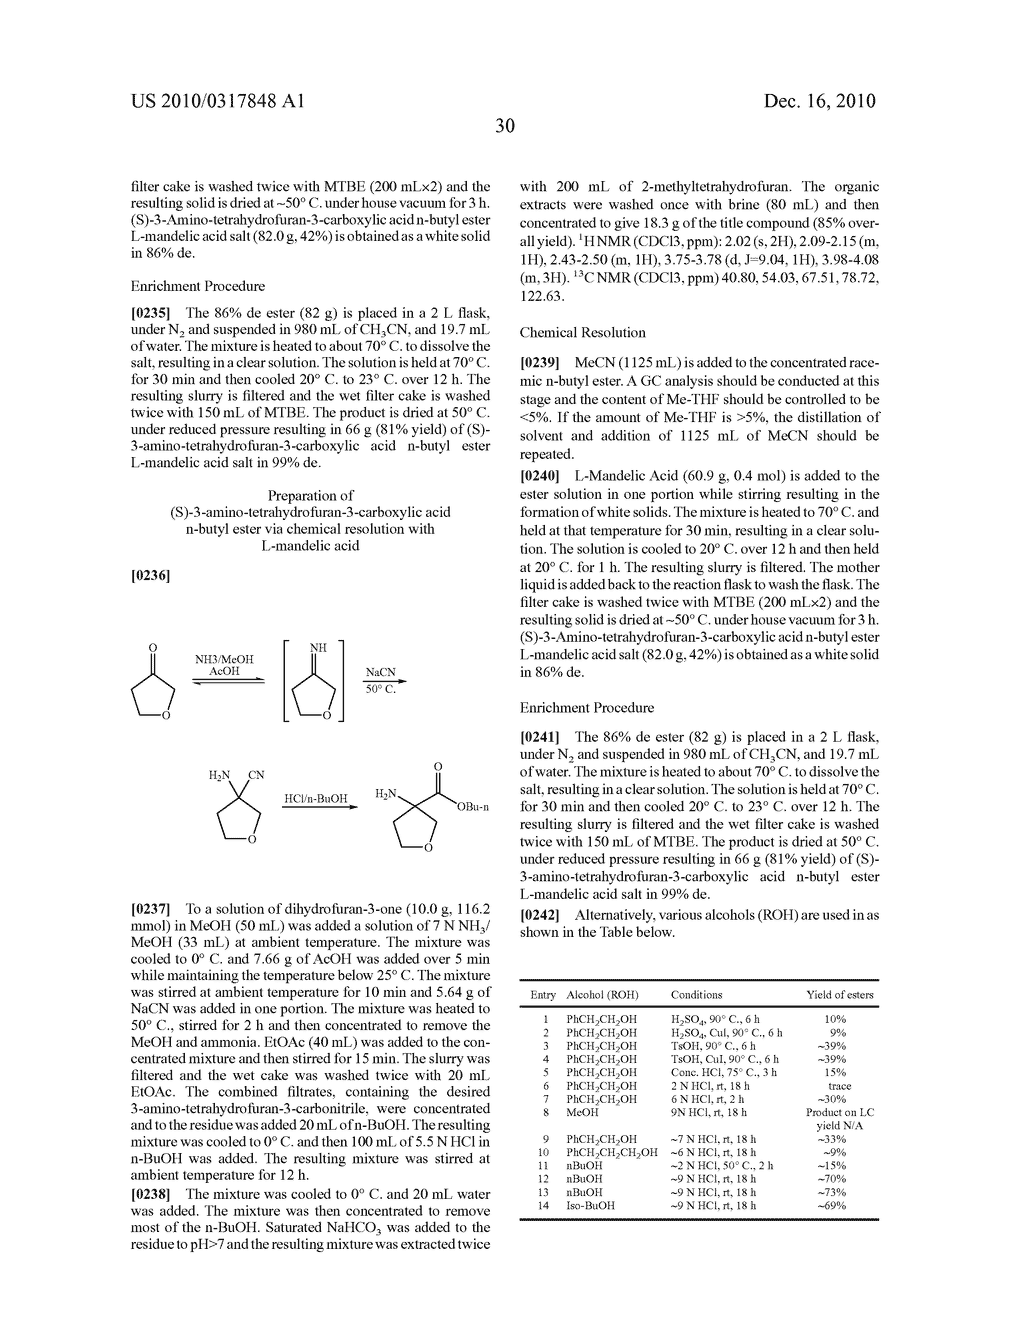 PROCESS FOR THE SYNTHESIS OF DERIVATIVES OF 3-AMINO-TETRAHYDROFURAN-3-CARBOXYLIC ACID AND USE THEREOF AS MEDICAMENTS - diagram, schematic, and image 35